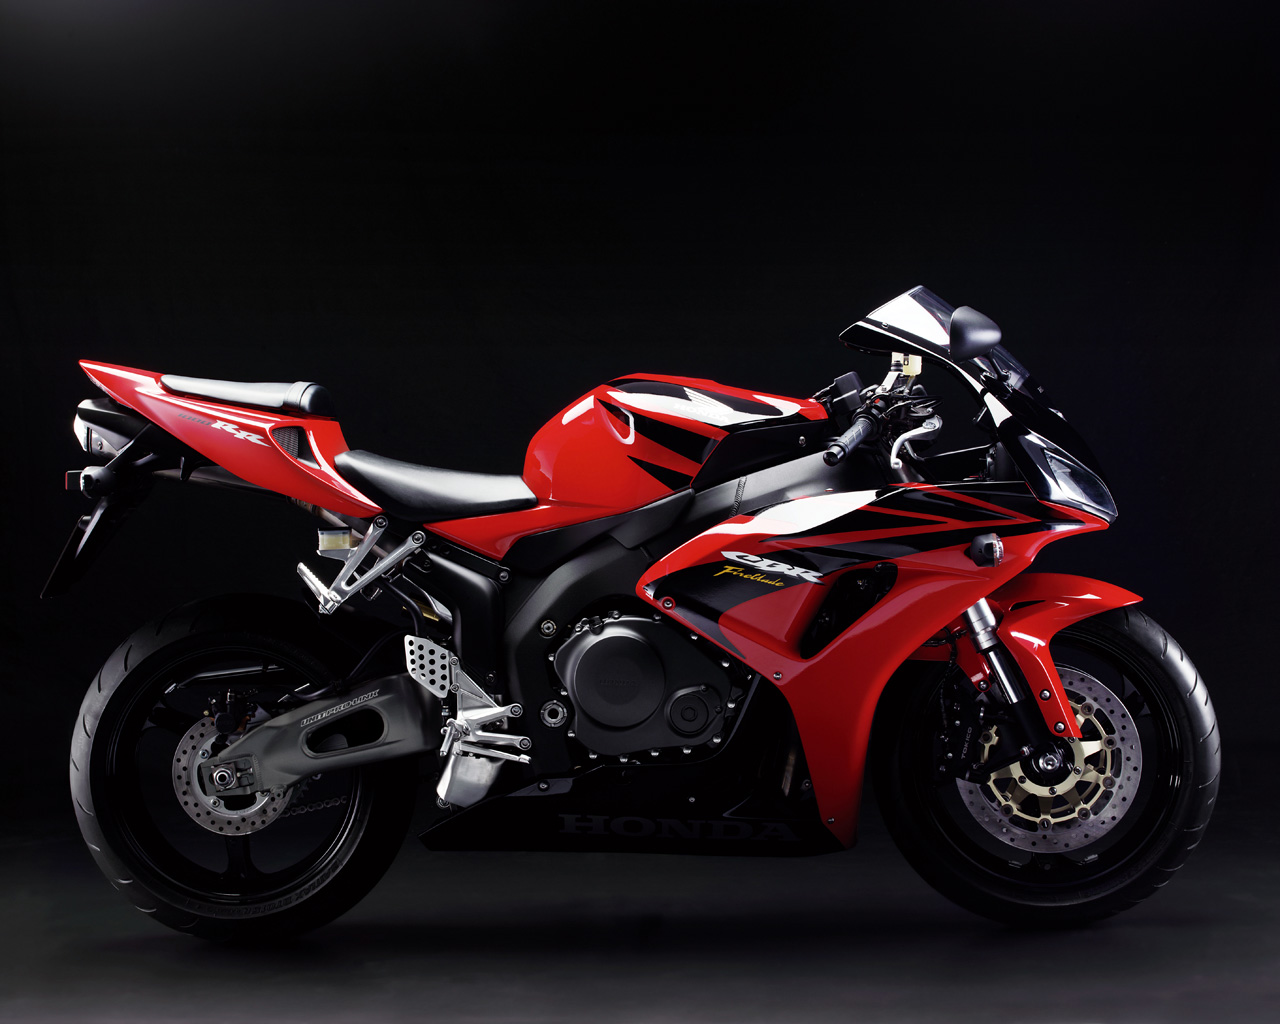 honda cbr1000rr freebikereviews. Black Bedroom Furniture Sets. Home Design Ideas